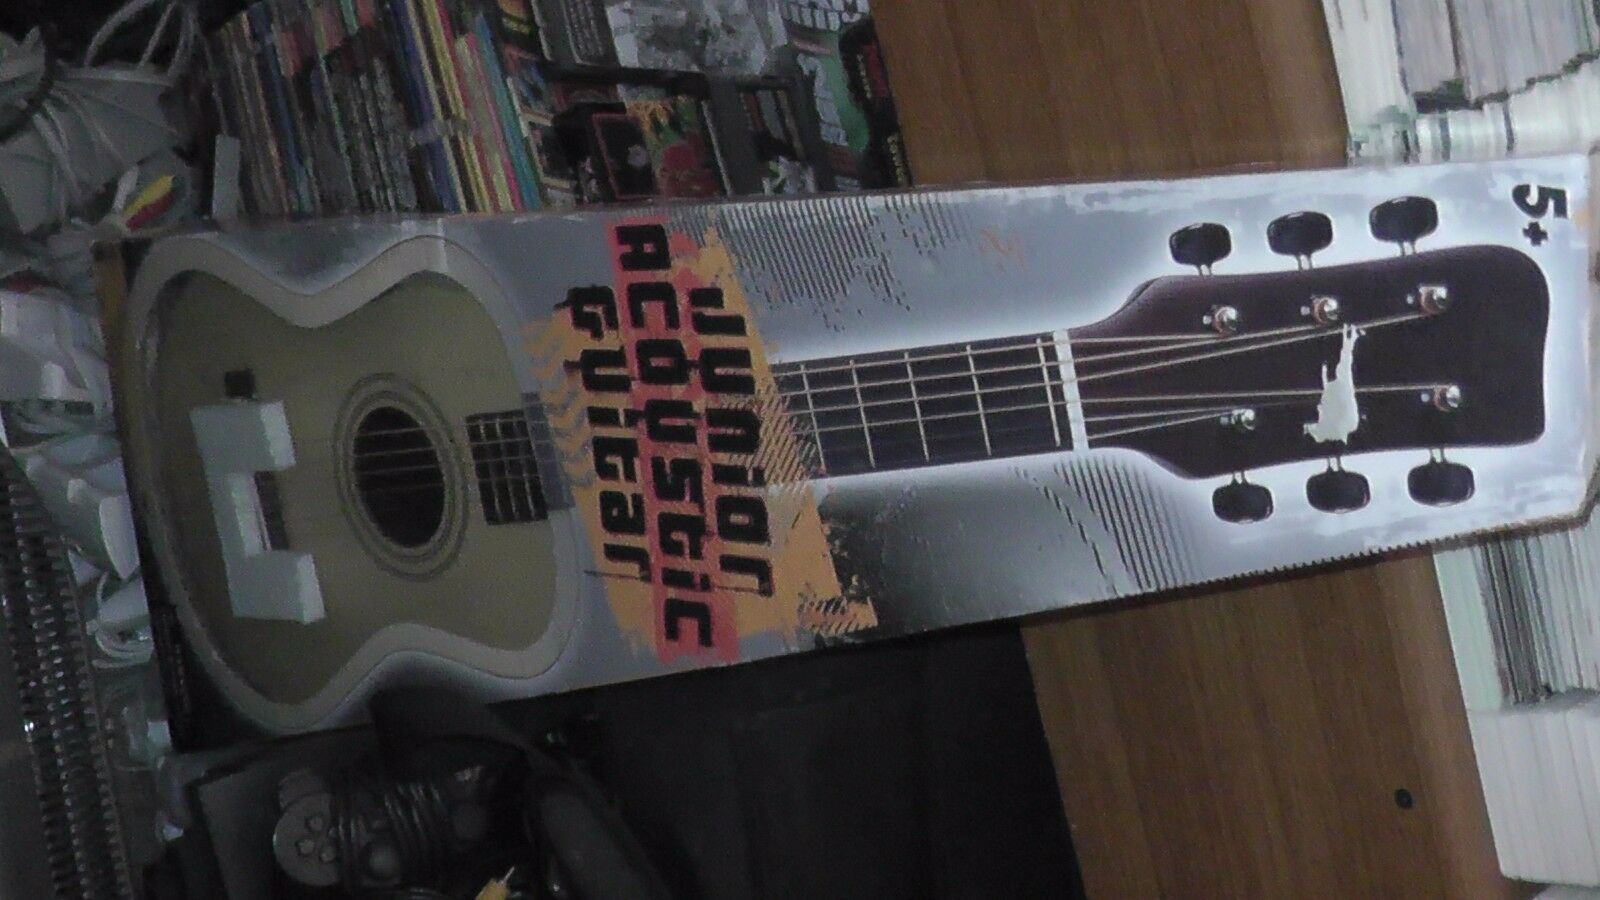 Junior Acoustic Guitar Nice Works Well With Box For Boys Girls Ages 5+ Complete